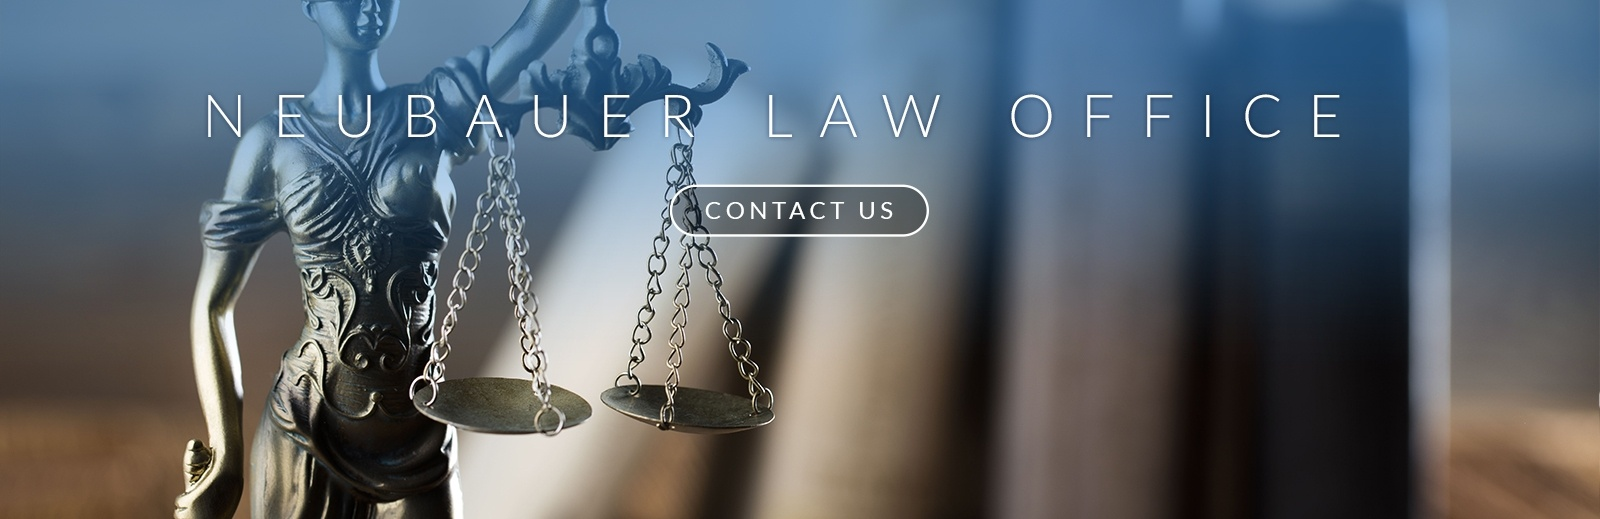 legal service lawyer oshawa ontario